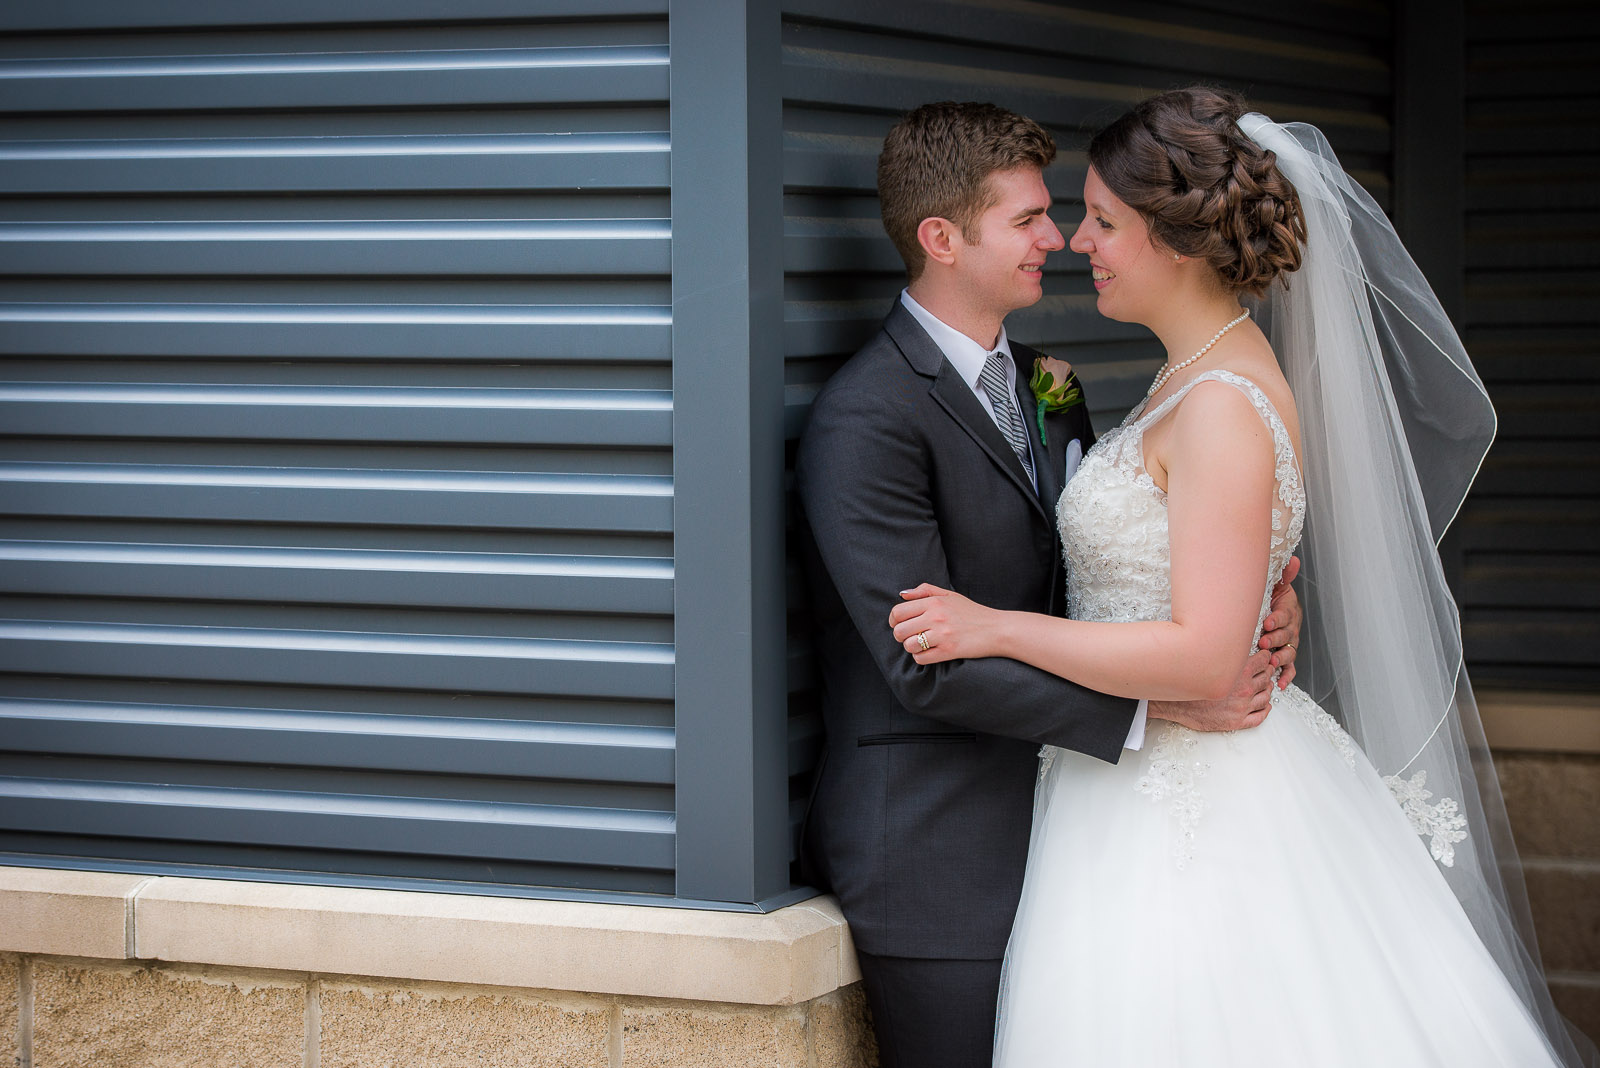 Eric_and_Christy_Photography_Blog_Wedding_Kelly_Michael-37